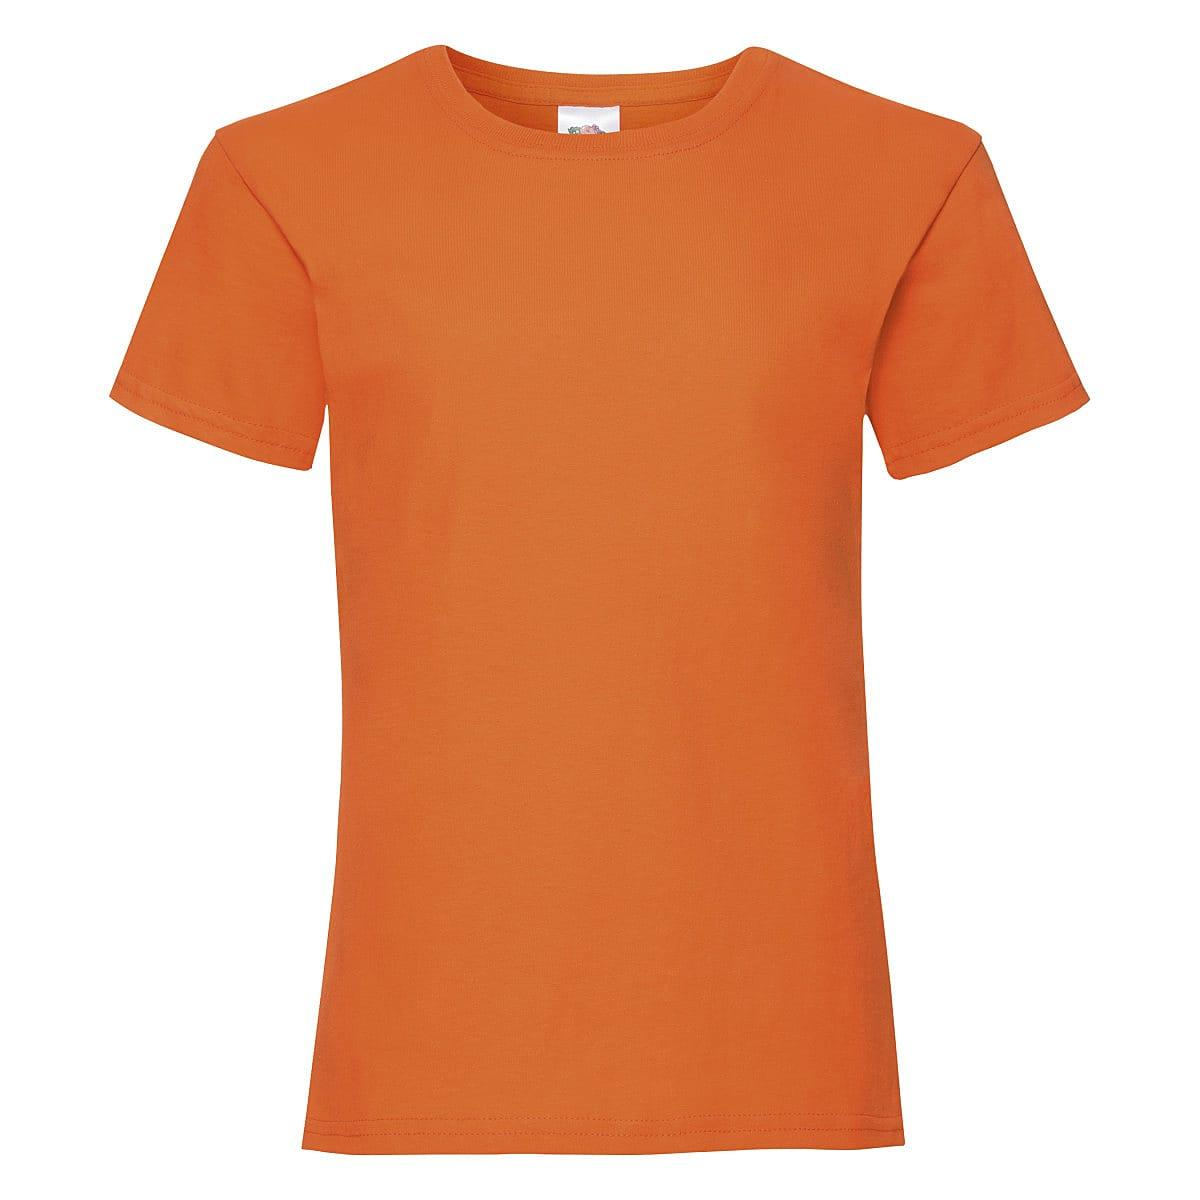 Fruit Of The Loom Girls Valueweight T-Shirt in Orange (Product Code: 61005)